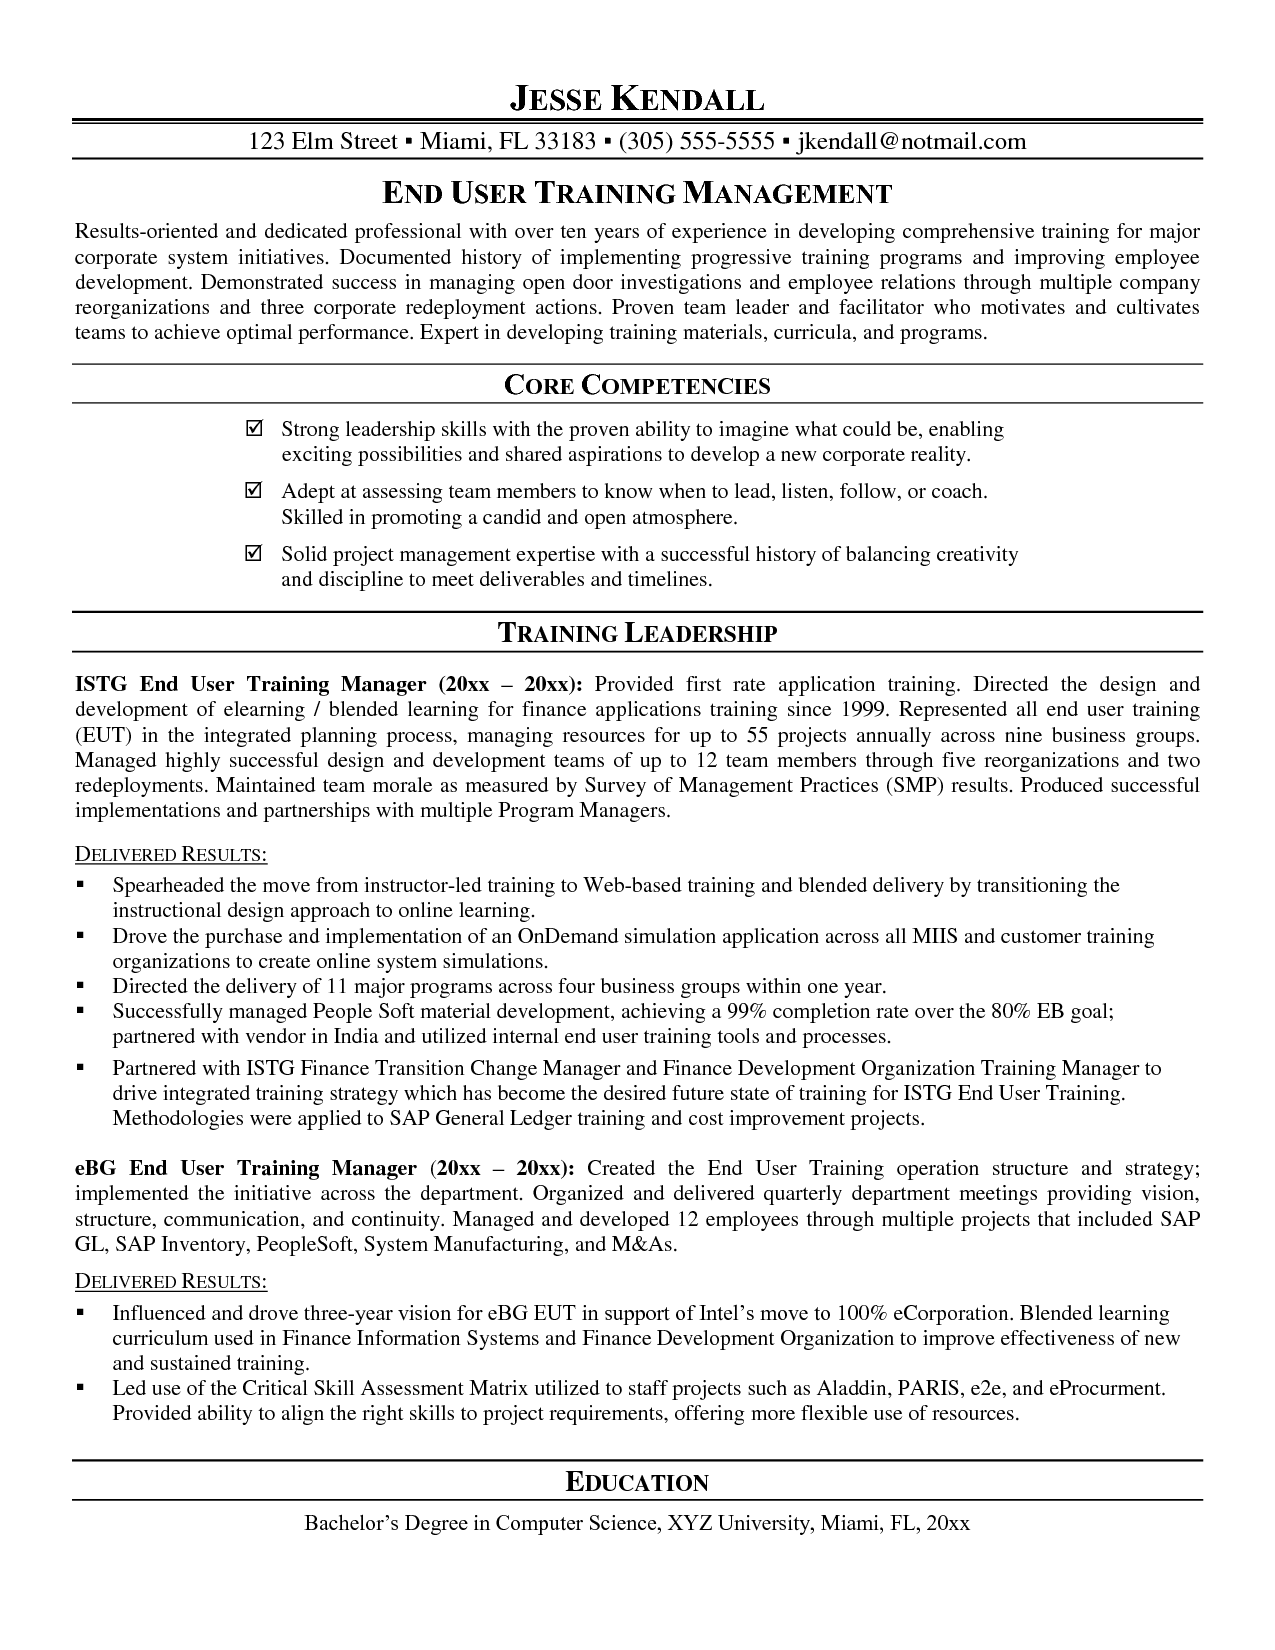 Finance Resume Objective Mesmerizing Training Manager Resume  Httpwwwresumecareertraining Design Ideas